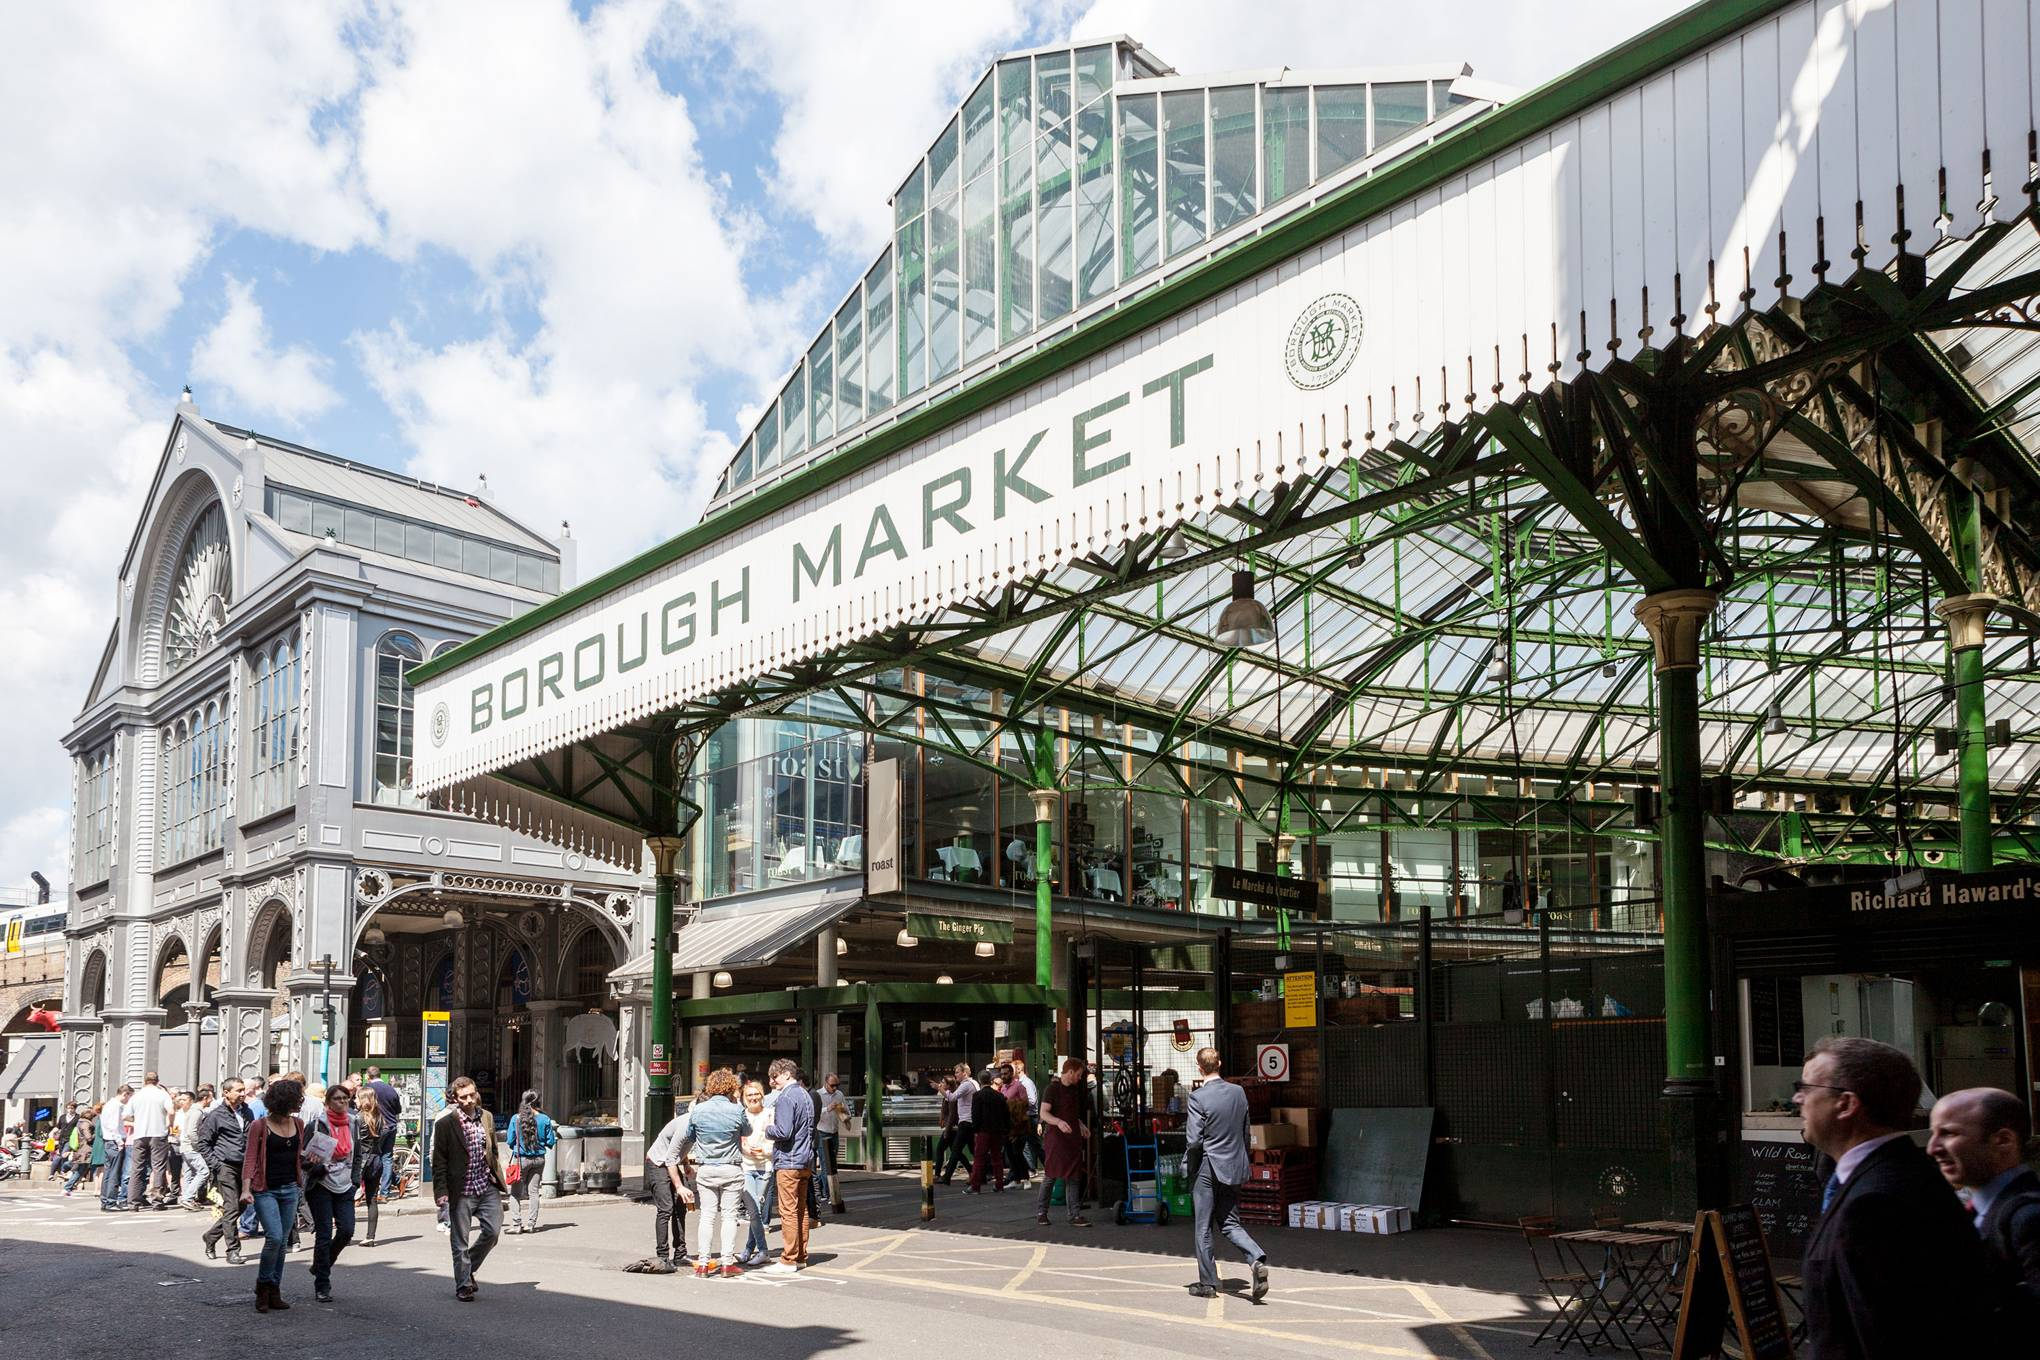 One day in London: The Borough Market